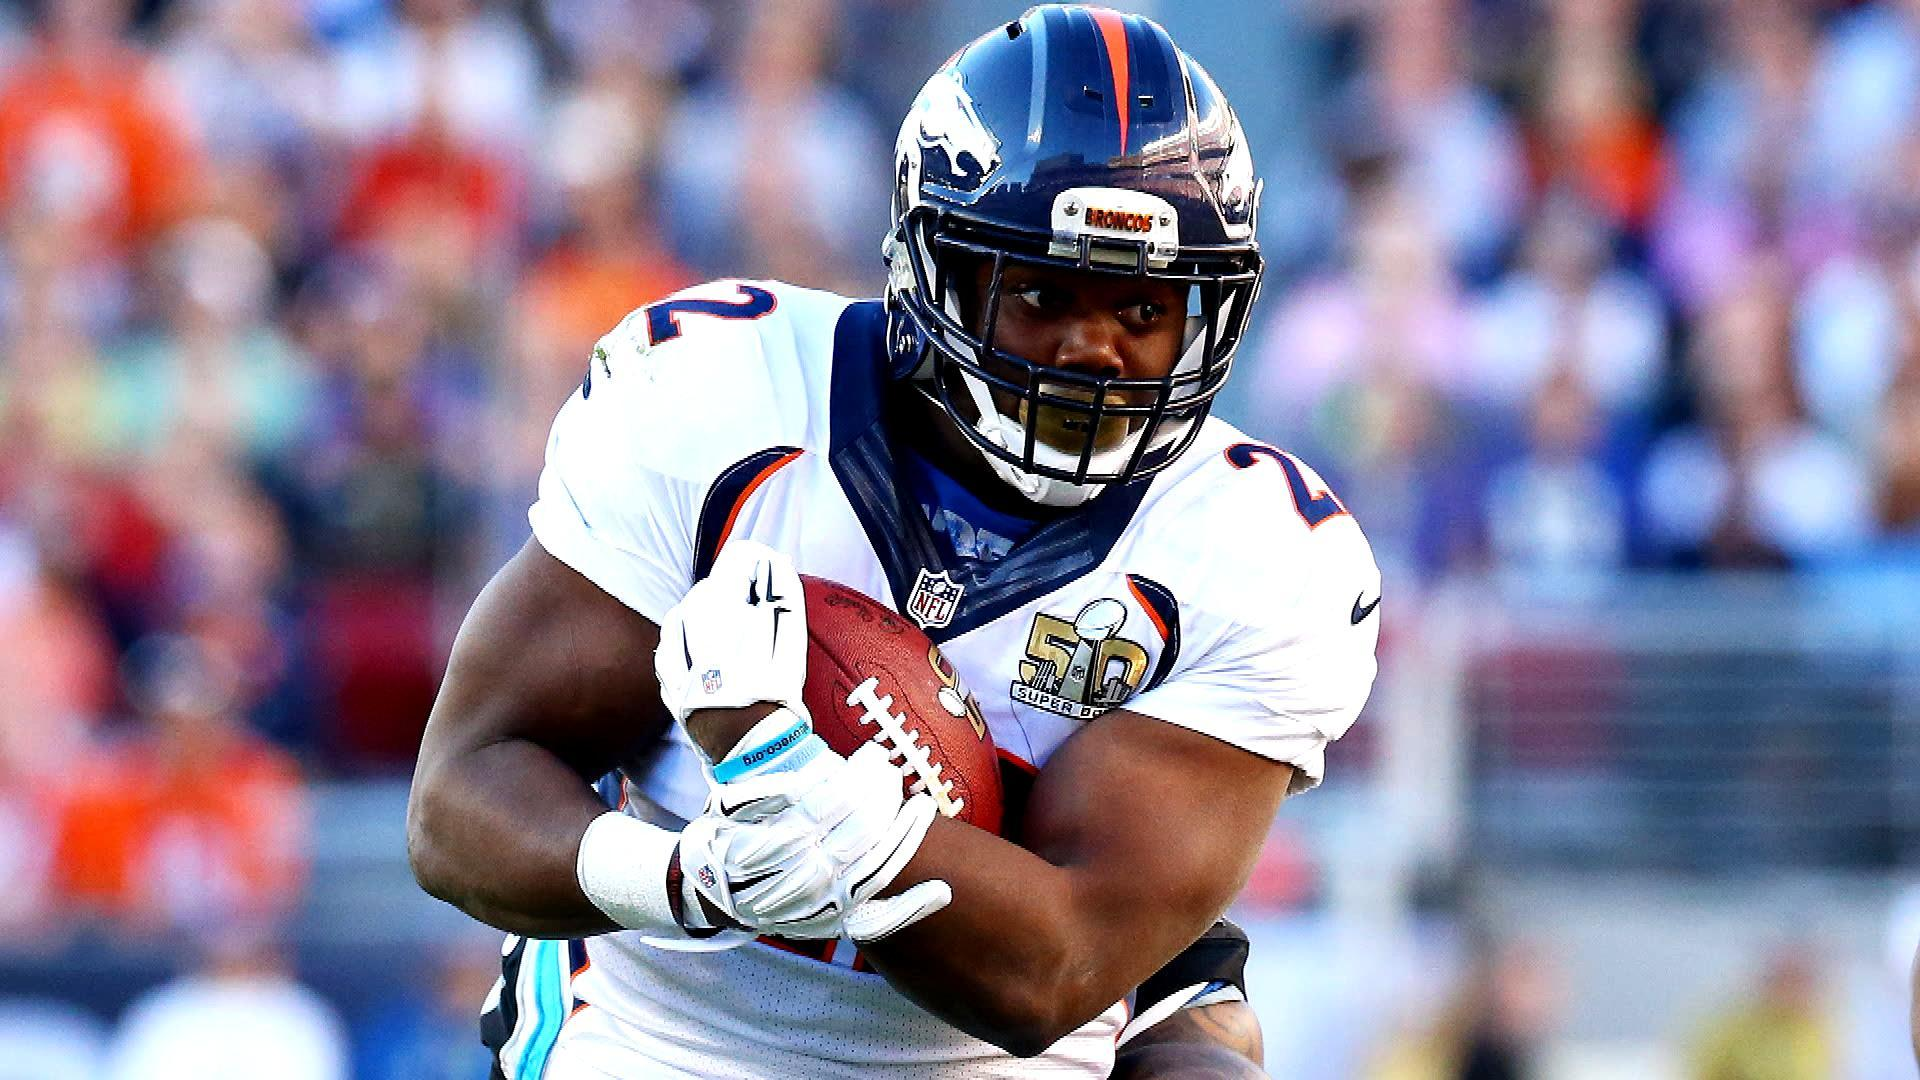 b62dfebbb51 Denver Broncos  C.J. Anderson has to live up to contract or face being cut